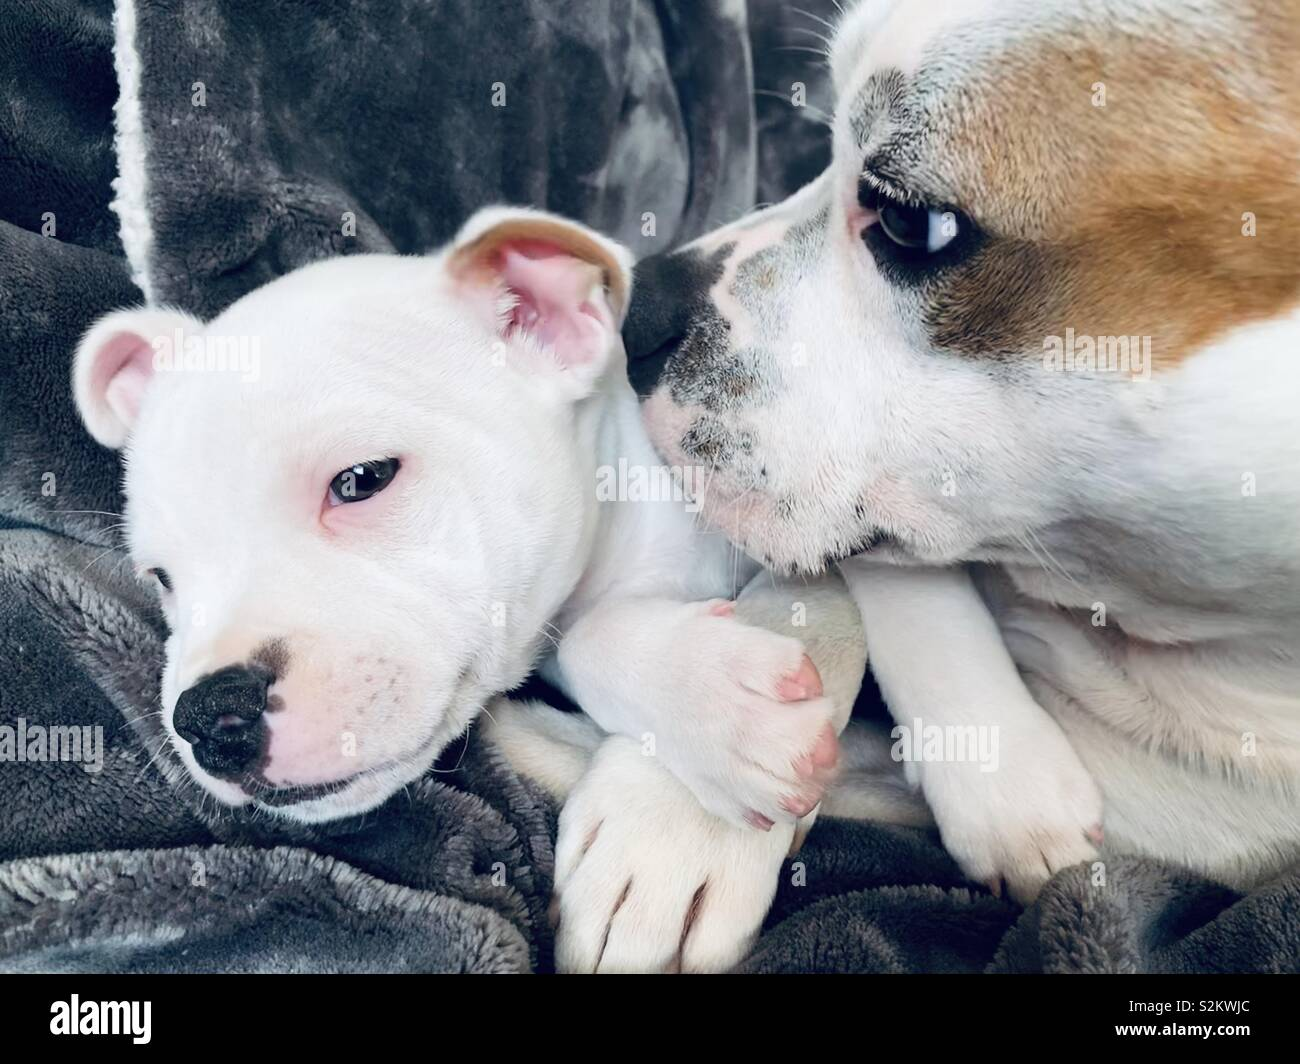 Staffordshire bull terrier puppy - Stock Image